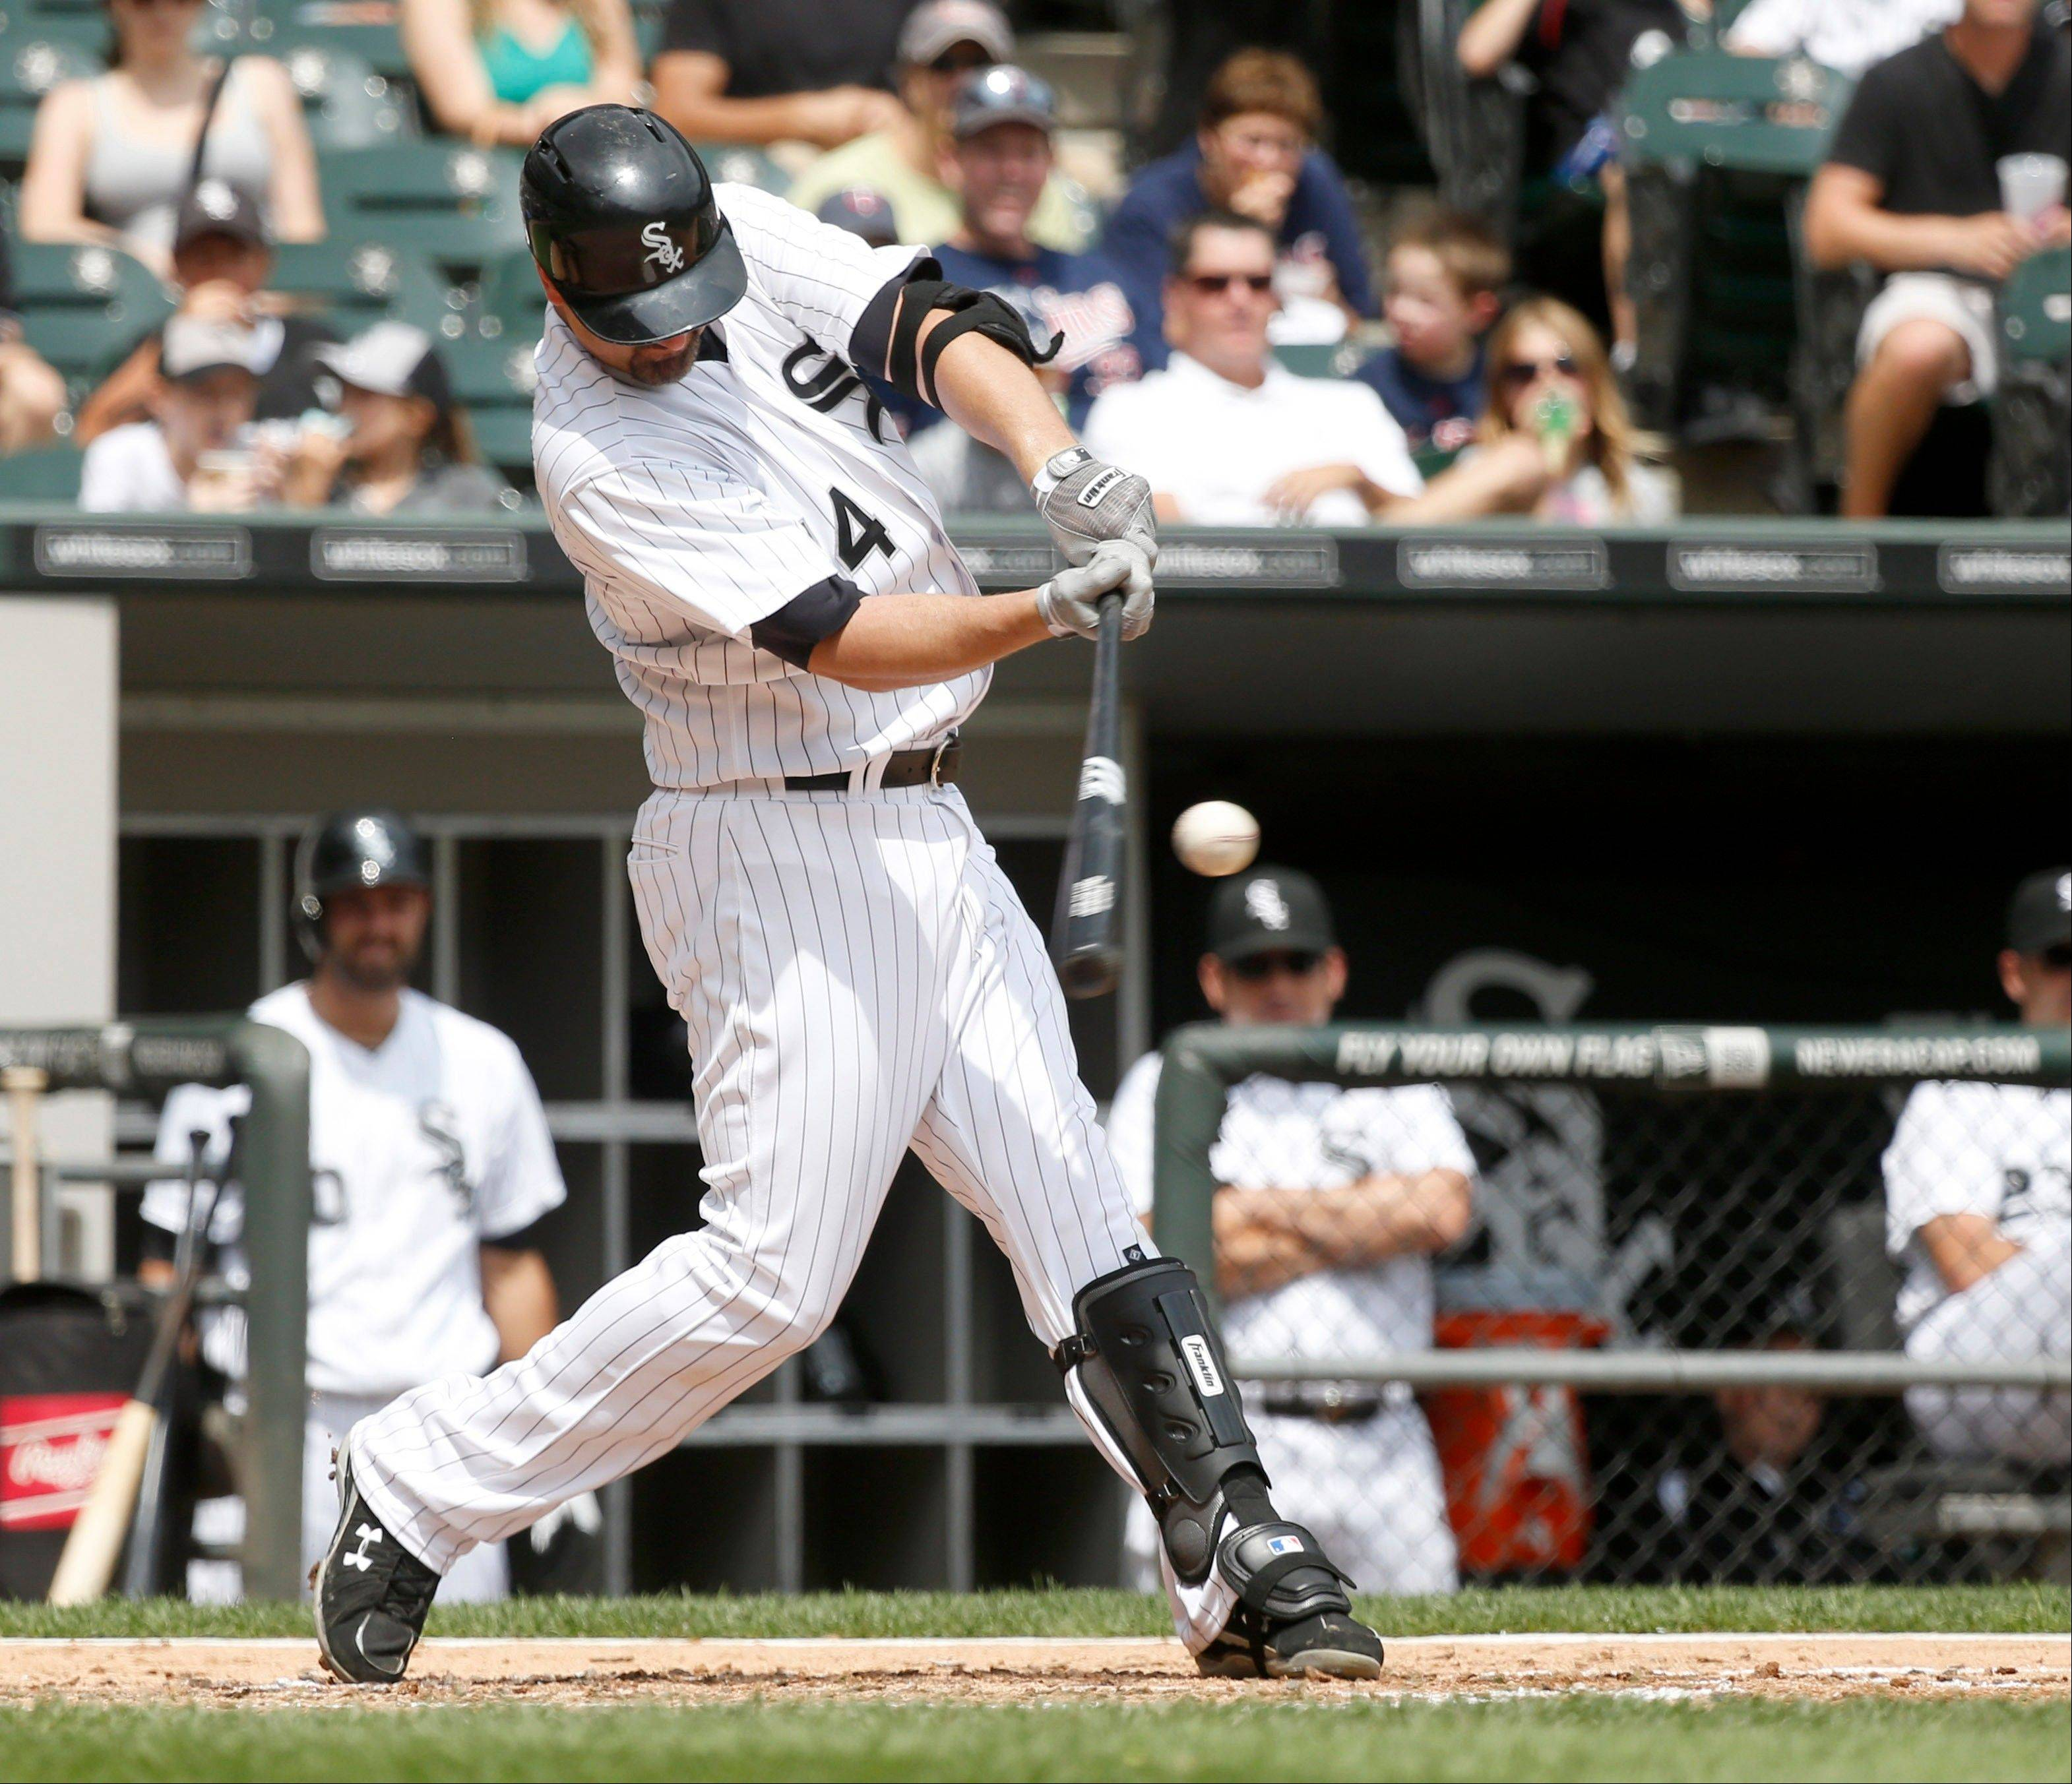 The White Sox' Paul Konerko hits a home run off Minnesota Twins starting pitcher Kyle Gibson during the second inning of a baseball game Friday, Aug. 9, 2013, in Chicago.